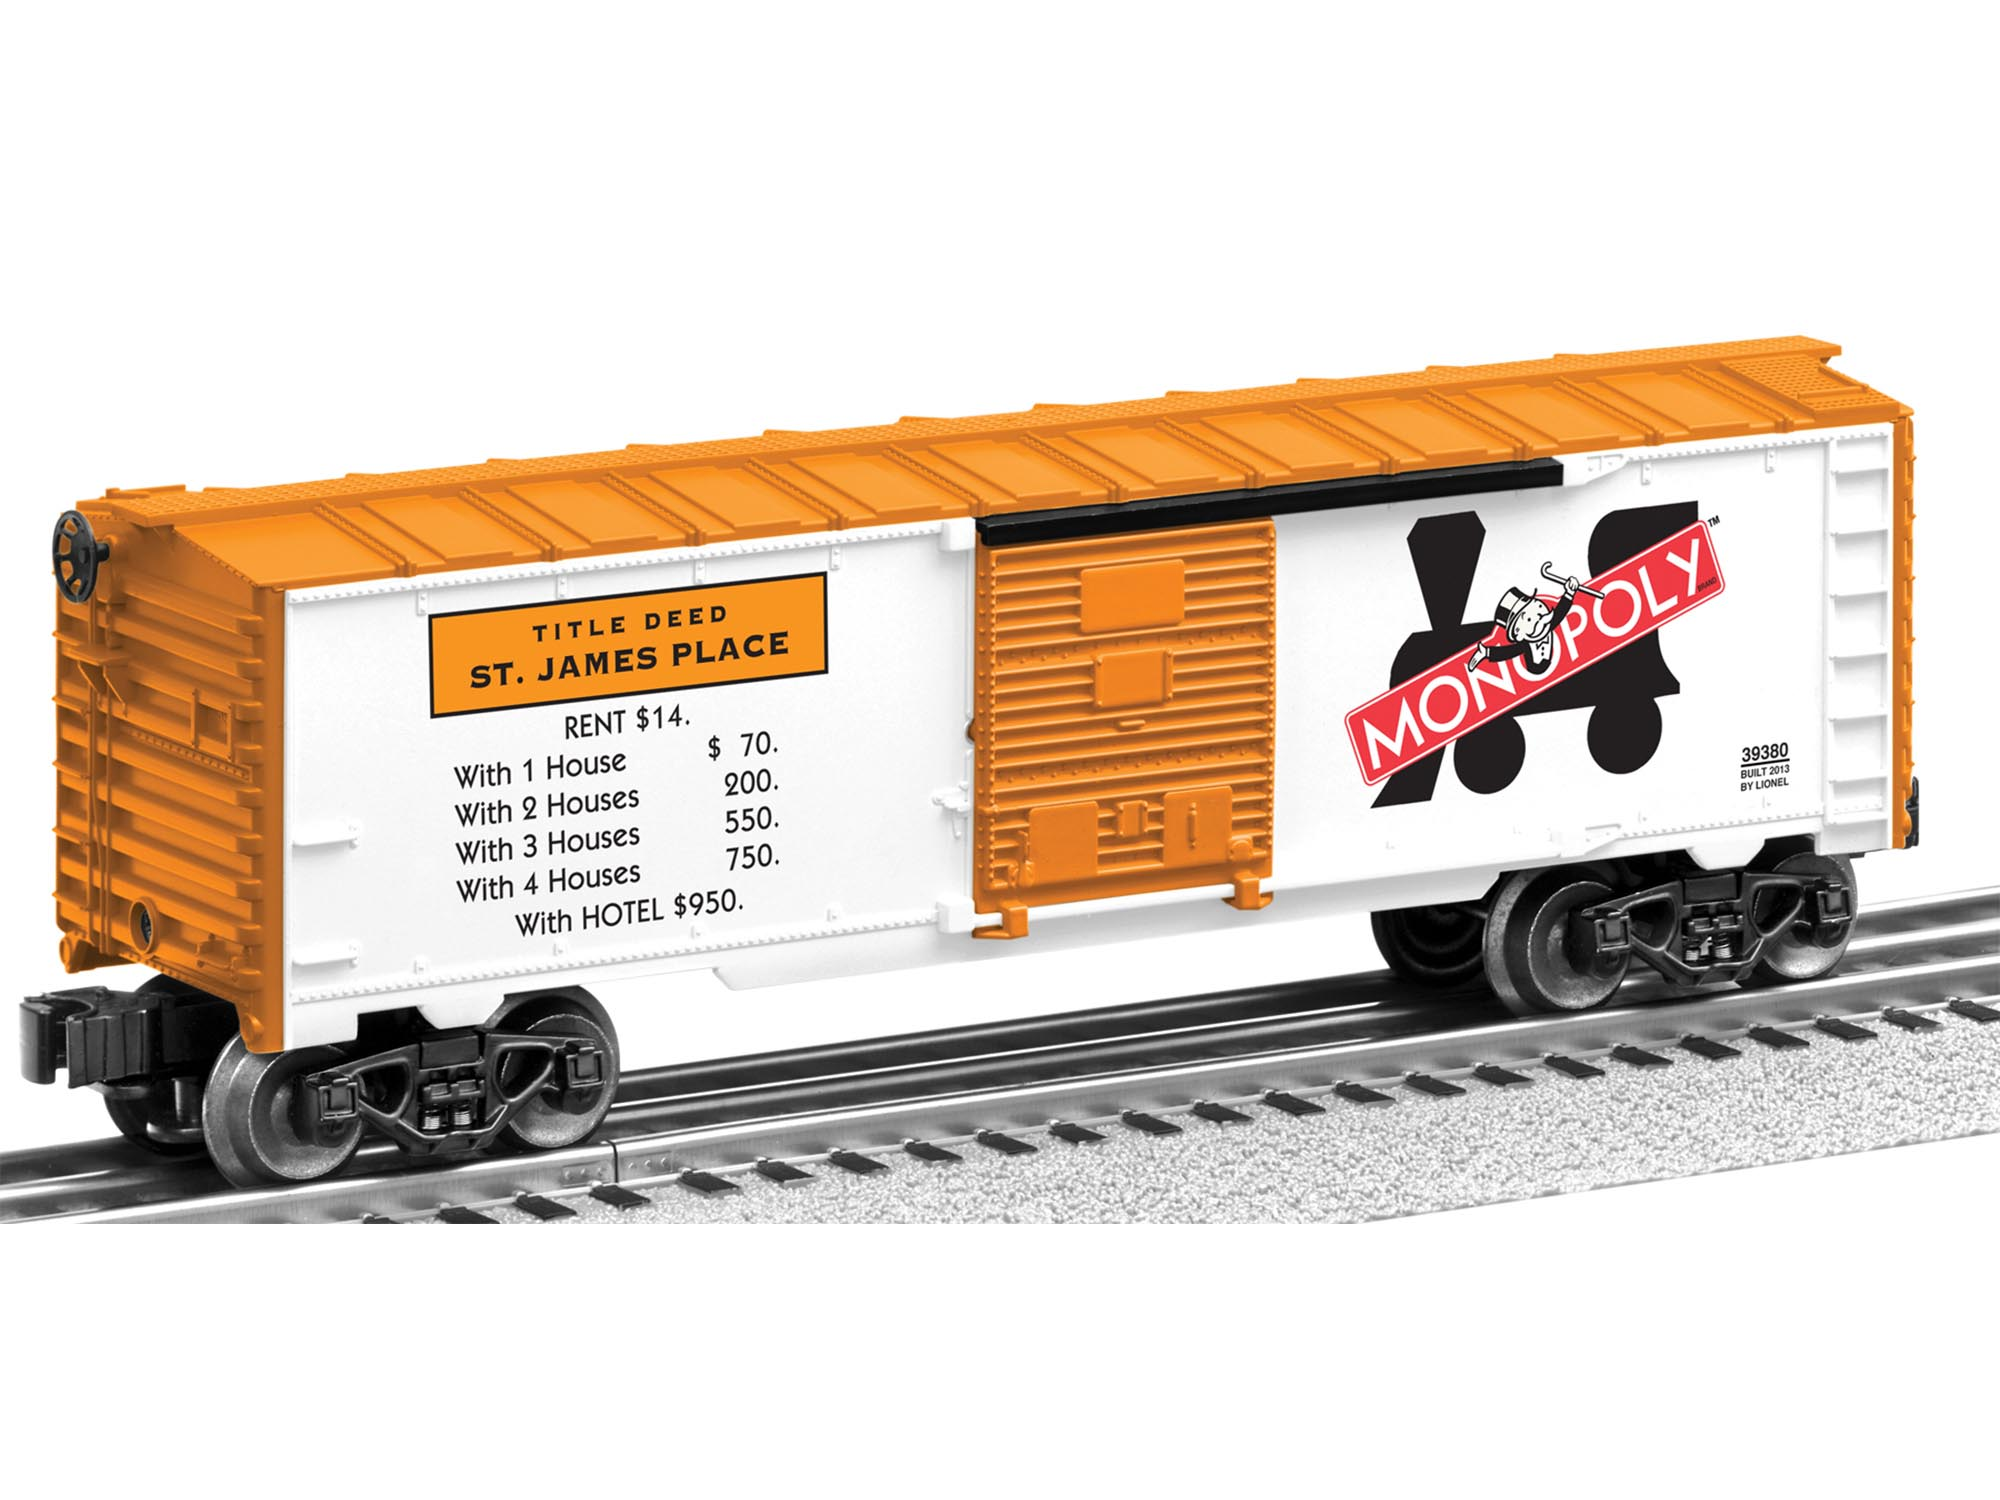 6-39379 MONOPOLY BOXCAR 2-PACK (MEDITERRANEAN AVE & ST JAMES PL)